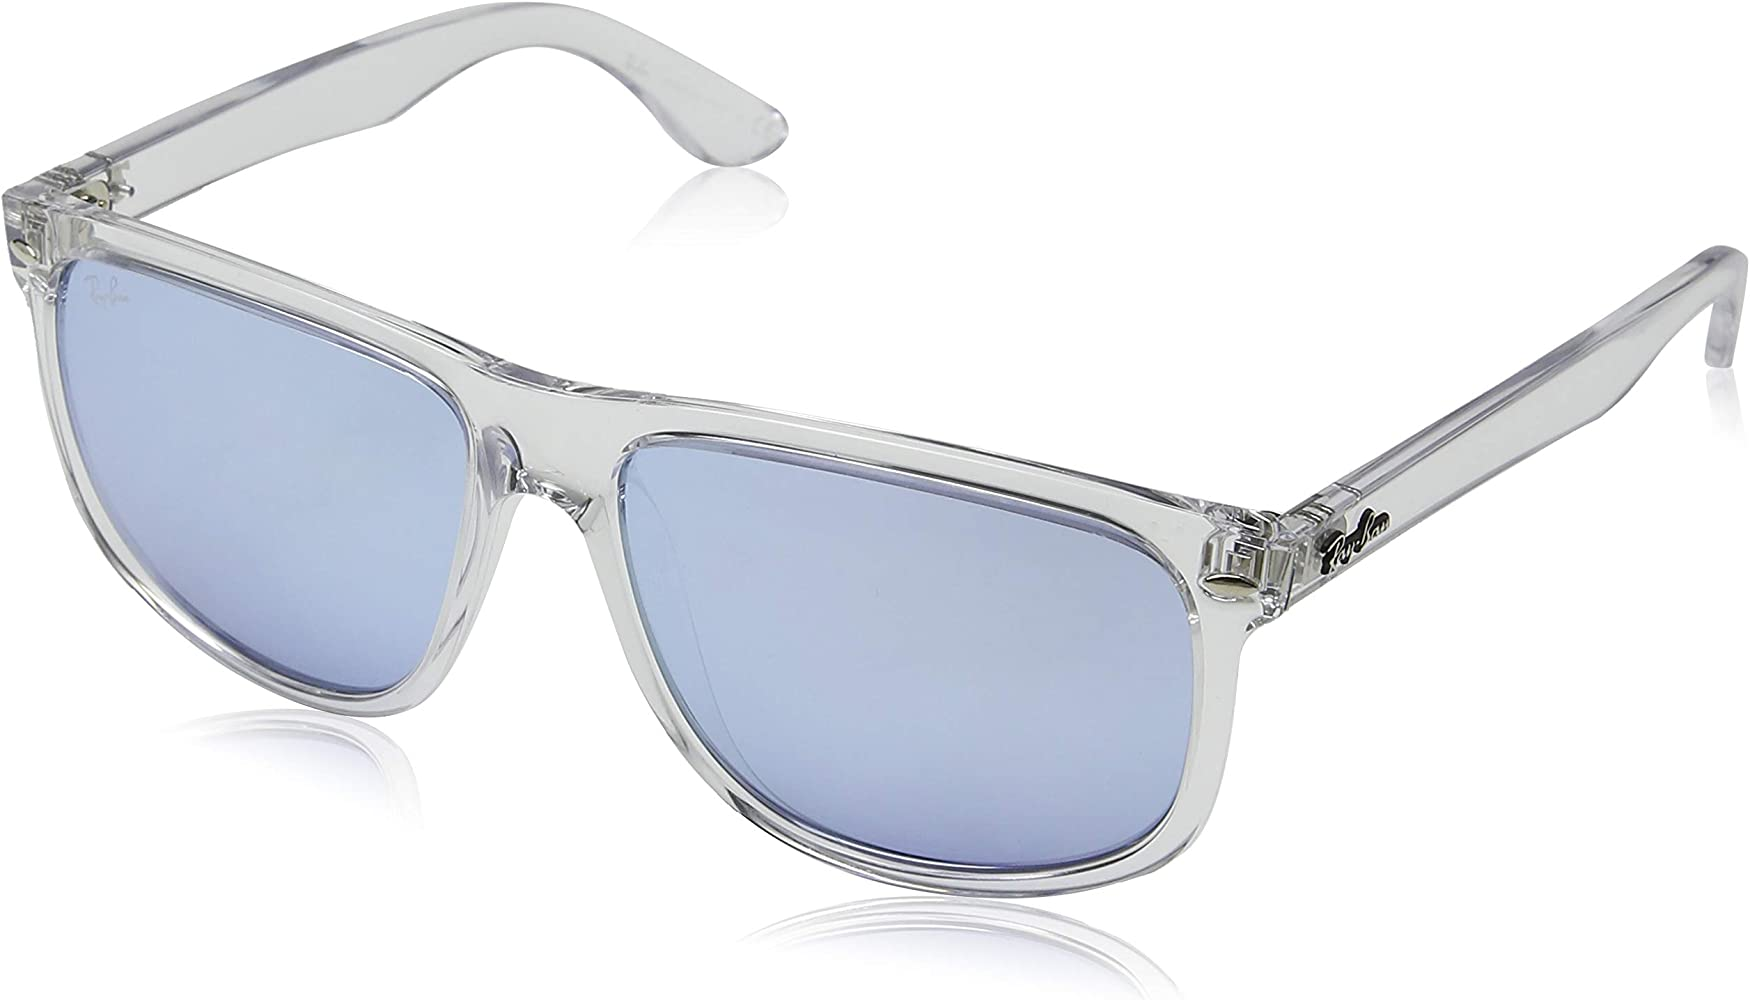 Amazon.com: Gafas de sol cuadradas Ray-Ban: Clothing